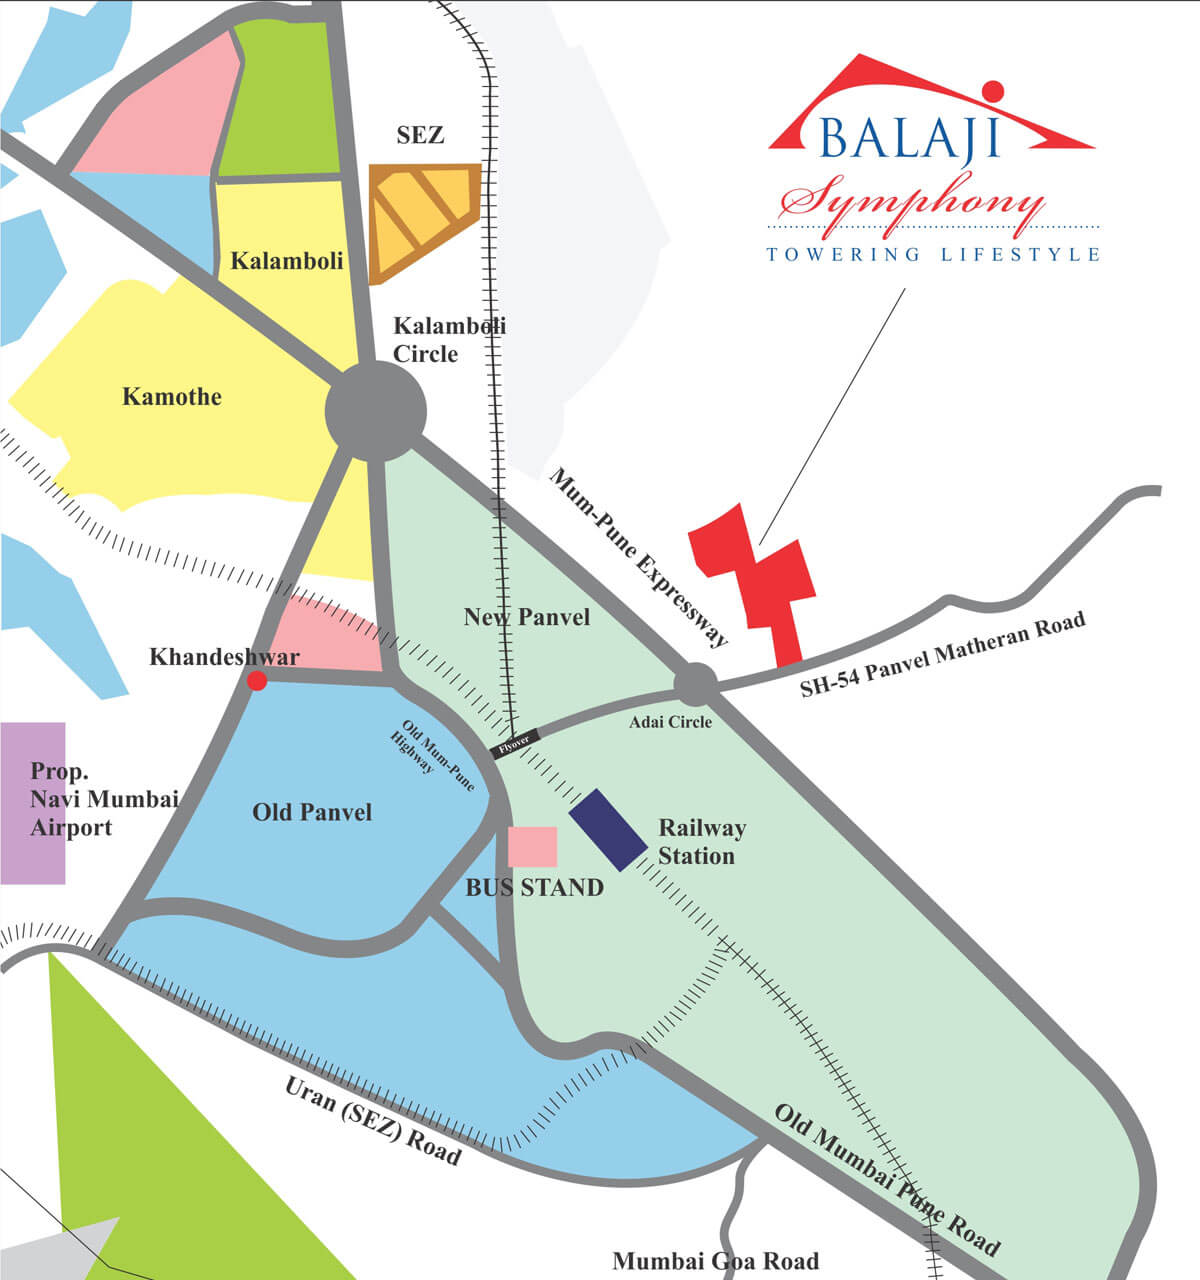 Balaji Symphony Project Location in Map